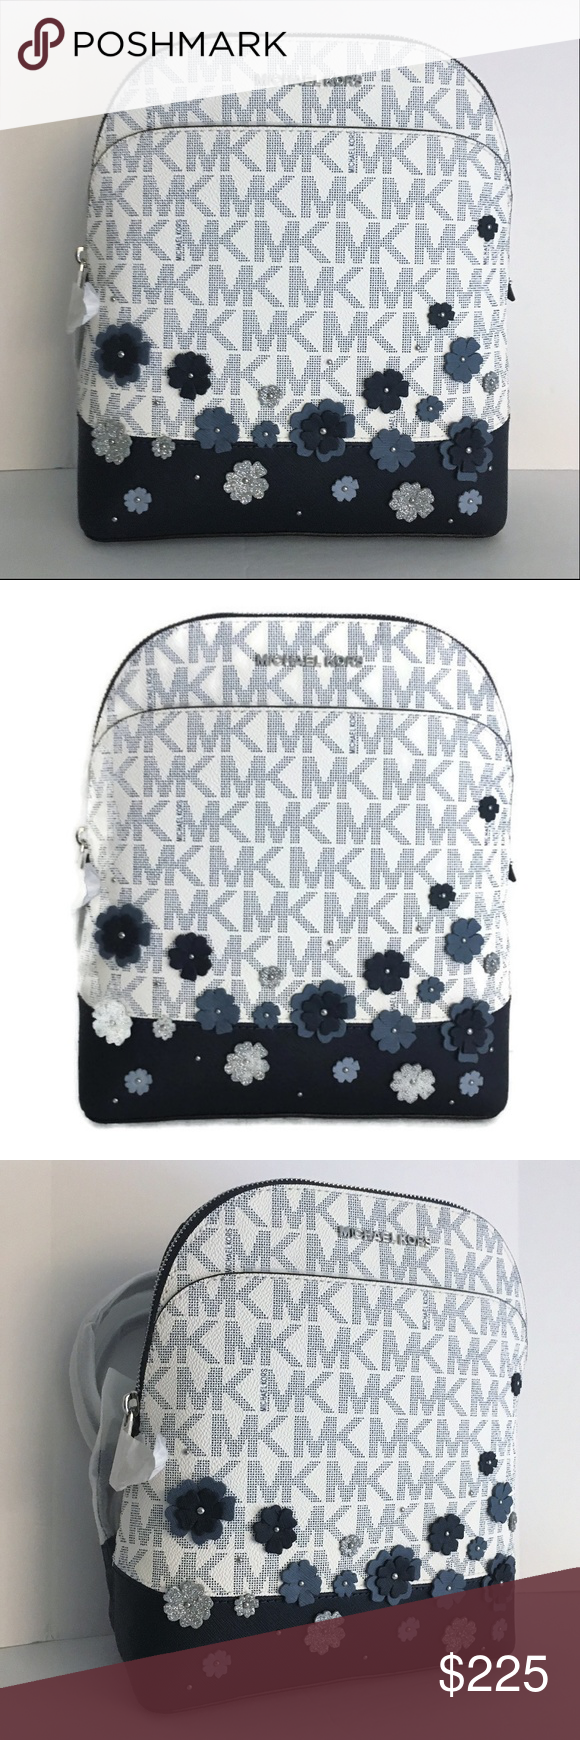 286d8be19fc0 Michael Kors Emmy Backpack Bag ~ Navy Blue Floral This beautiful Emmy  Backpack from Michael Kors